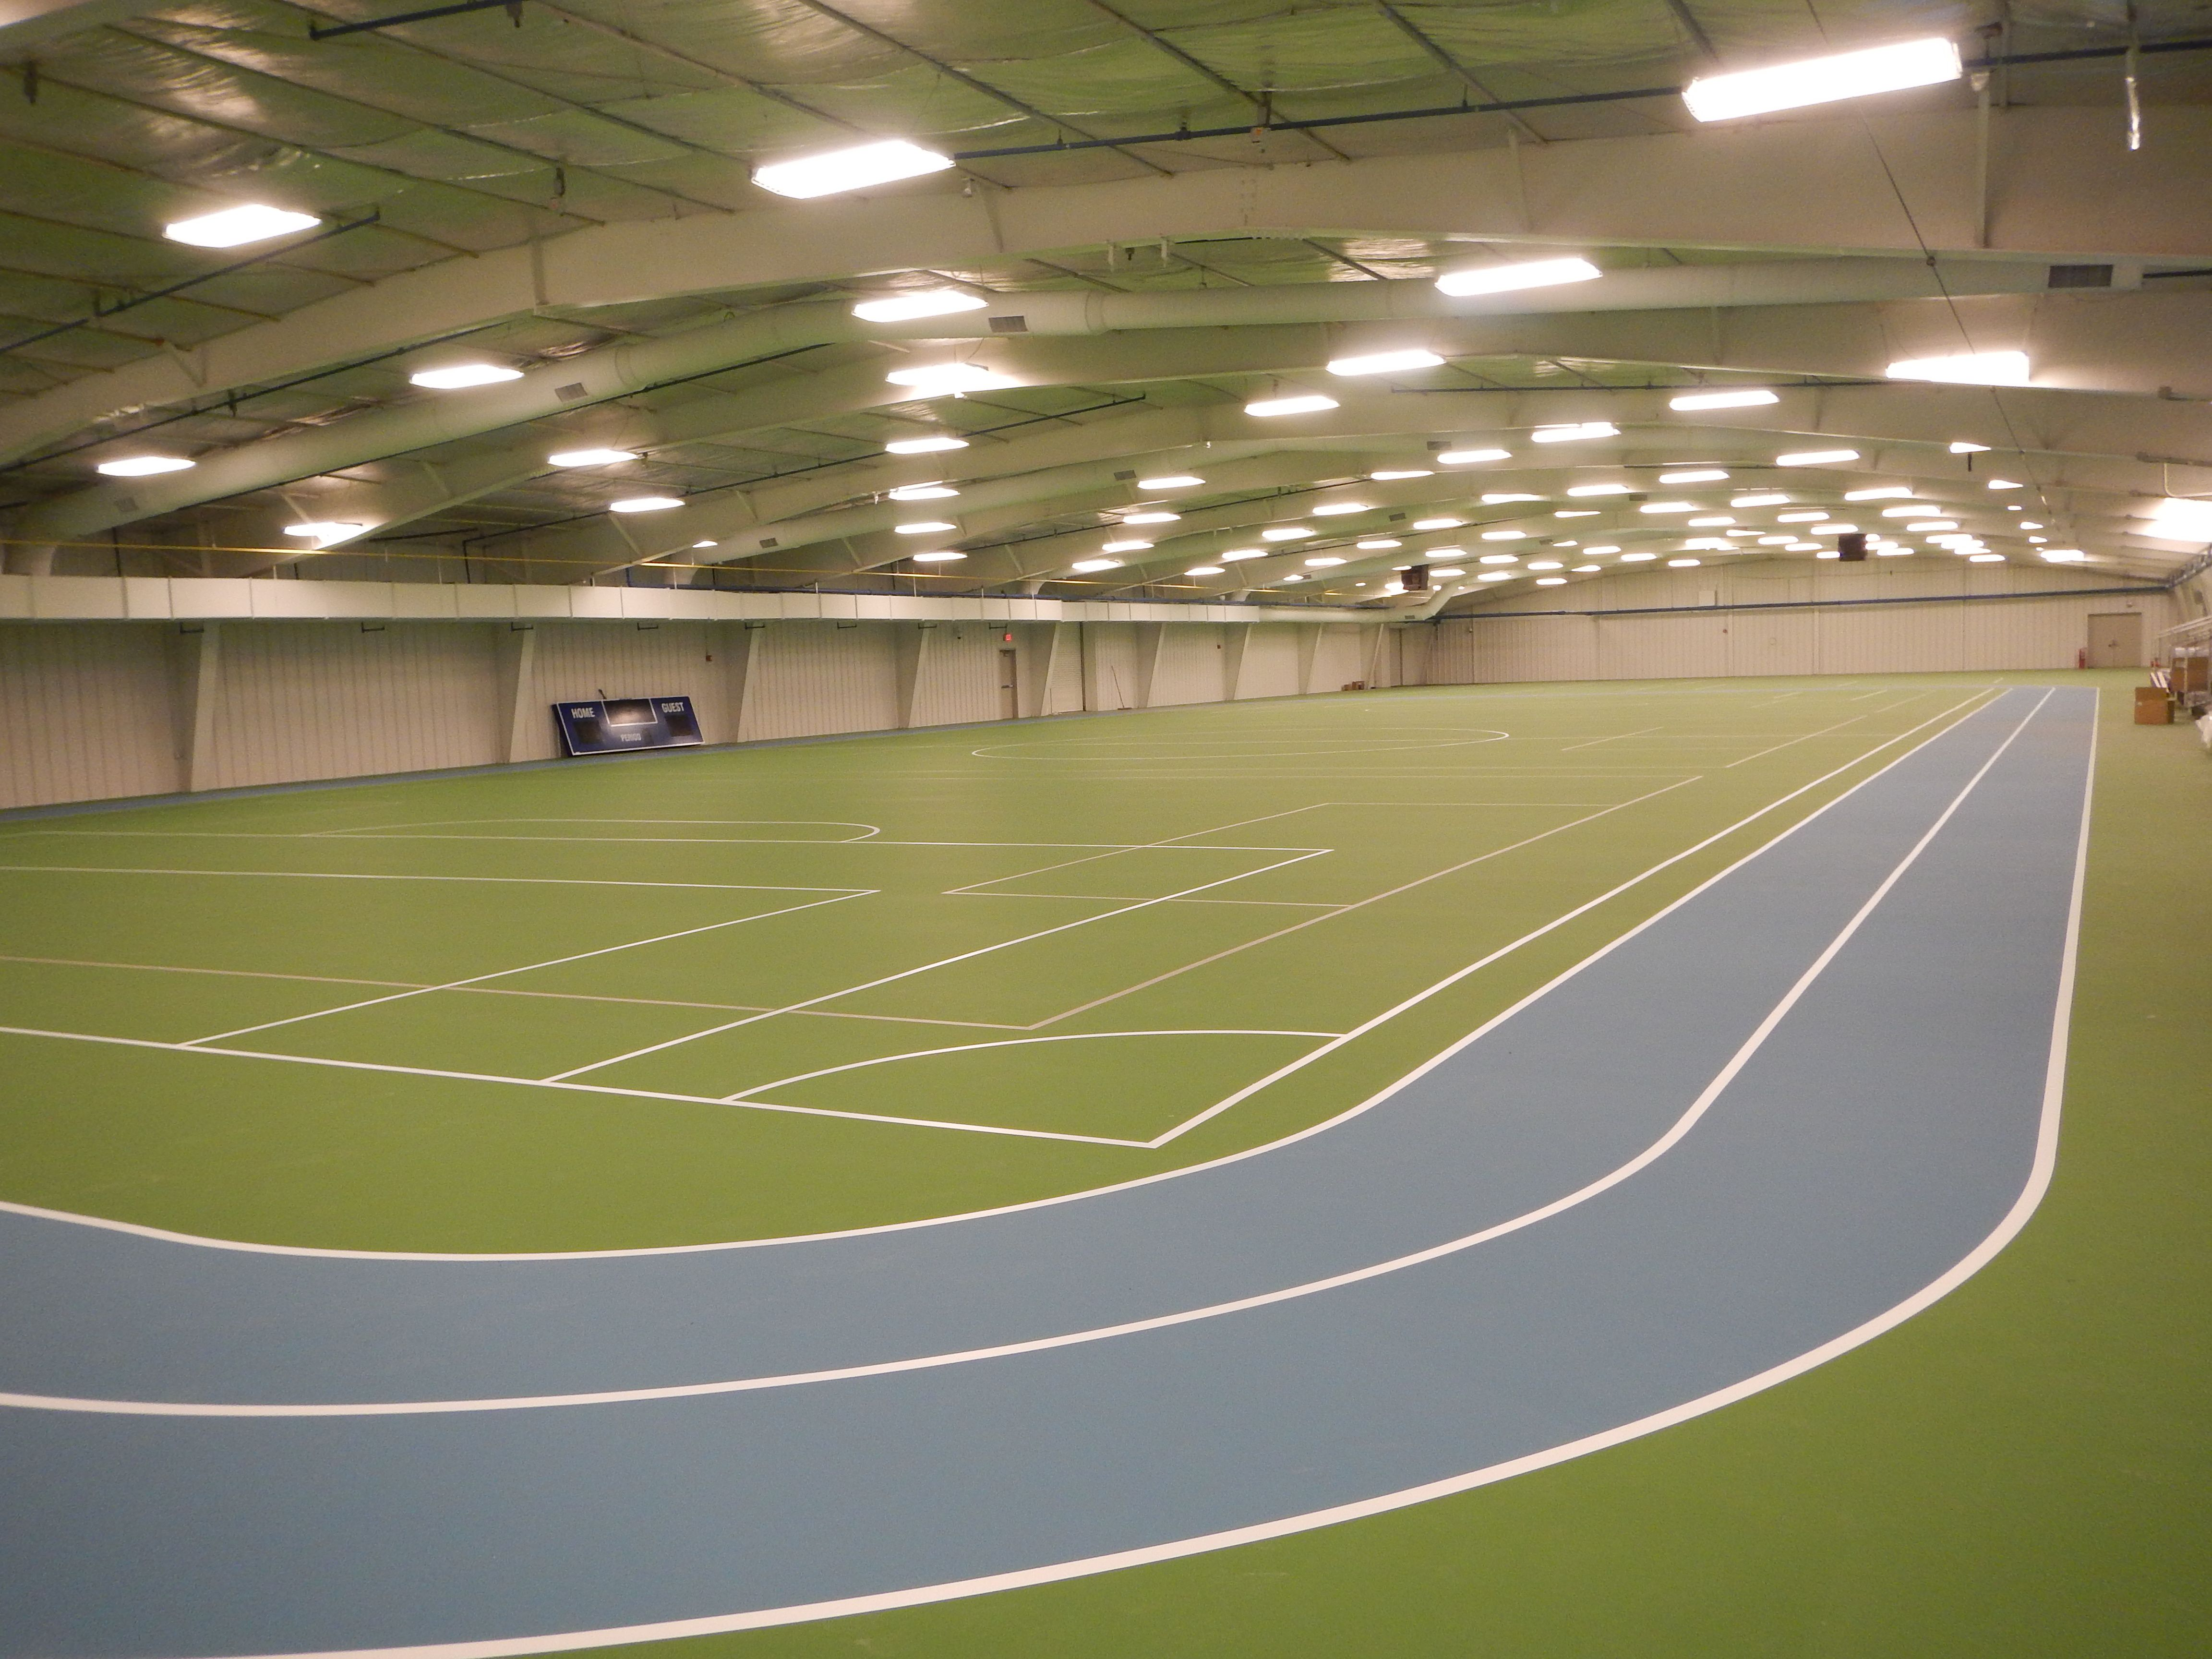 Arena 1 Is An Athletic Exercise And Multipurpose Area Which Is Approximately 31 000 Square Feet It Has Rubberized Indoor Soccer Field Playground Indoor Arena